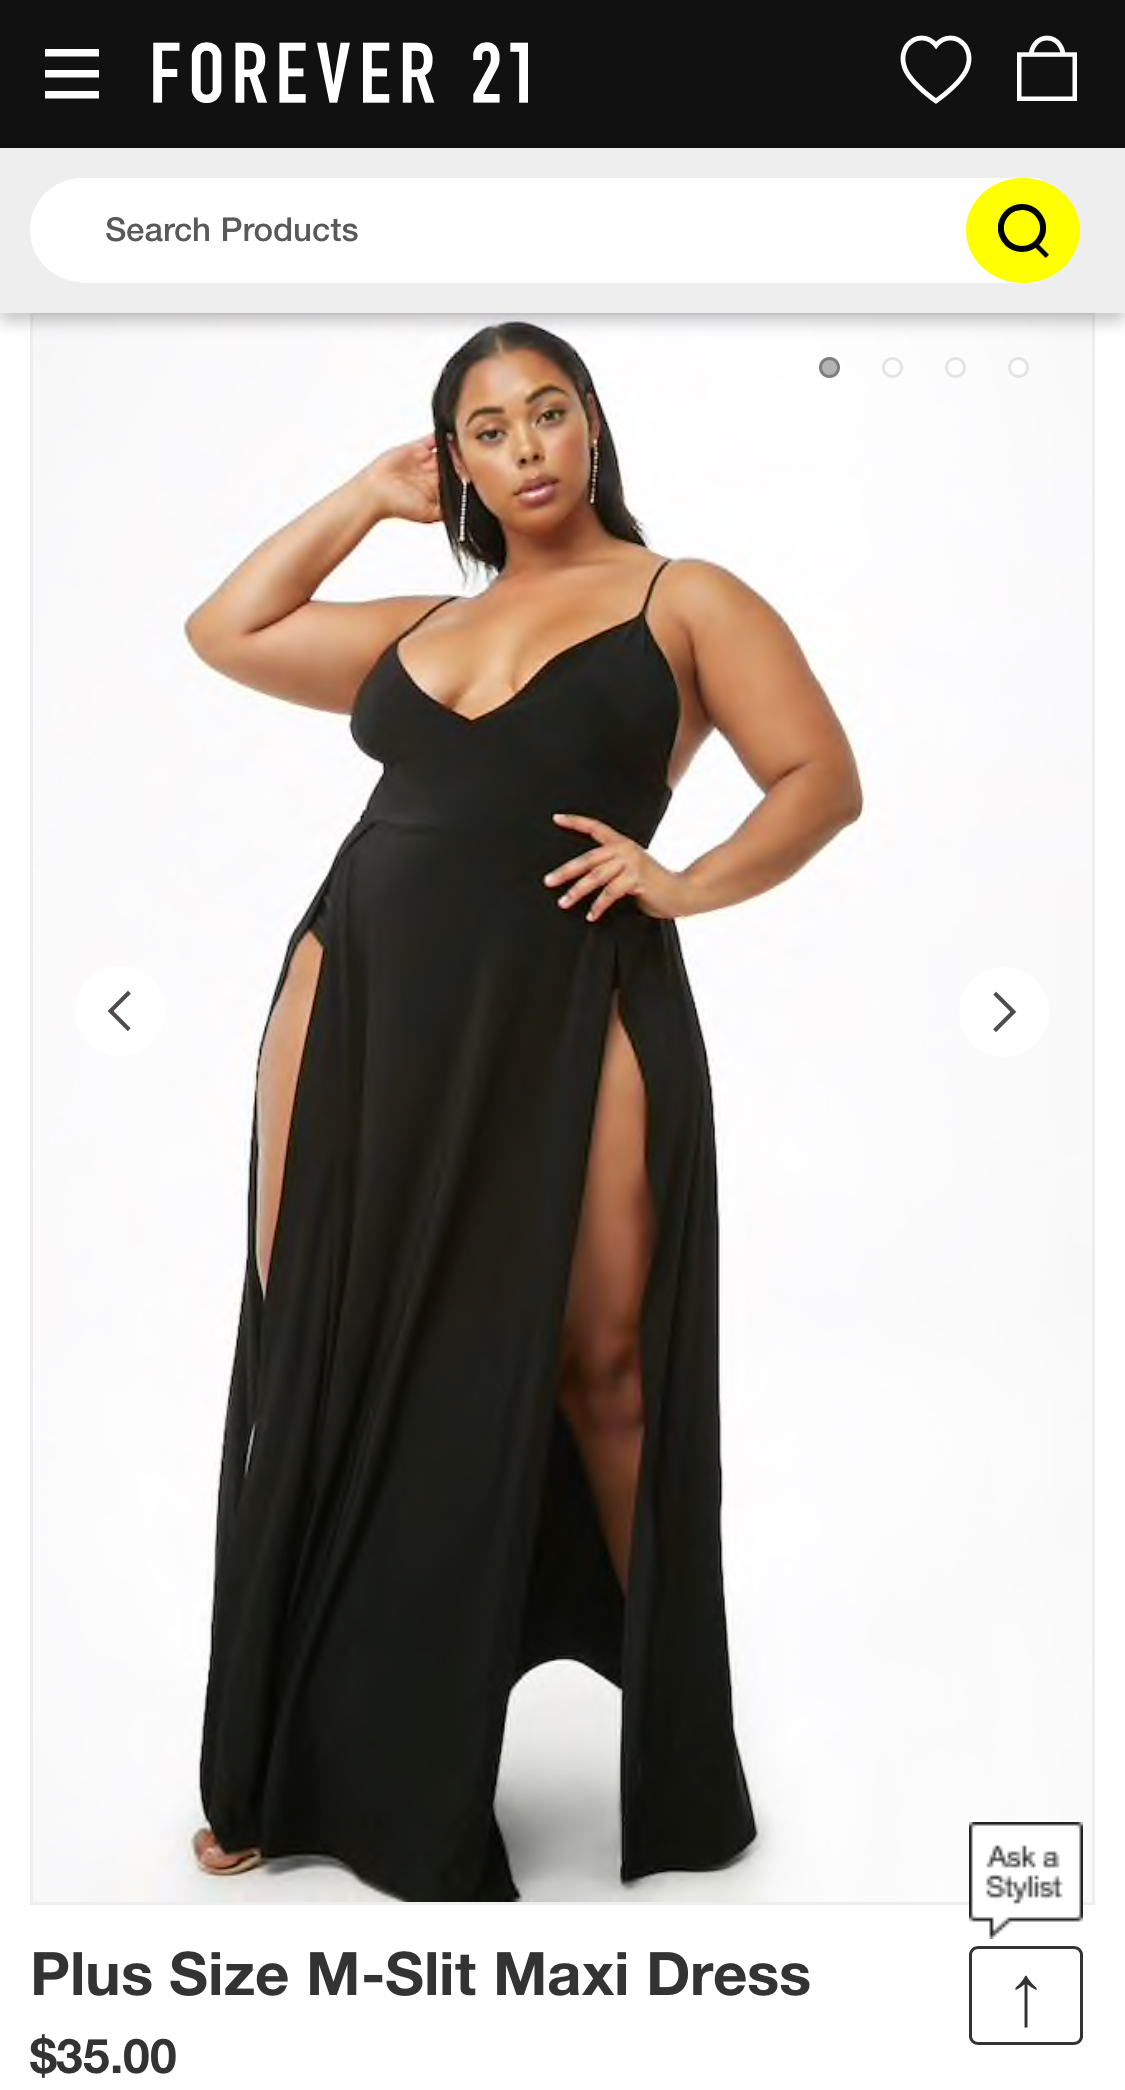 Plus Size M-Slit Maxi Dress